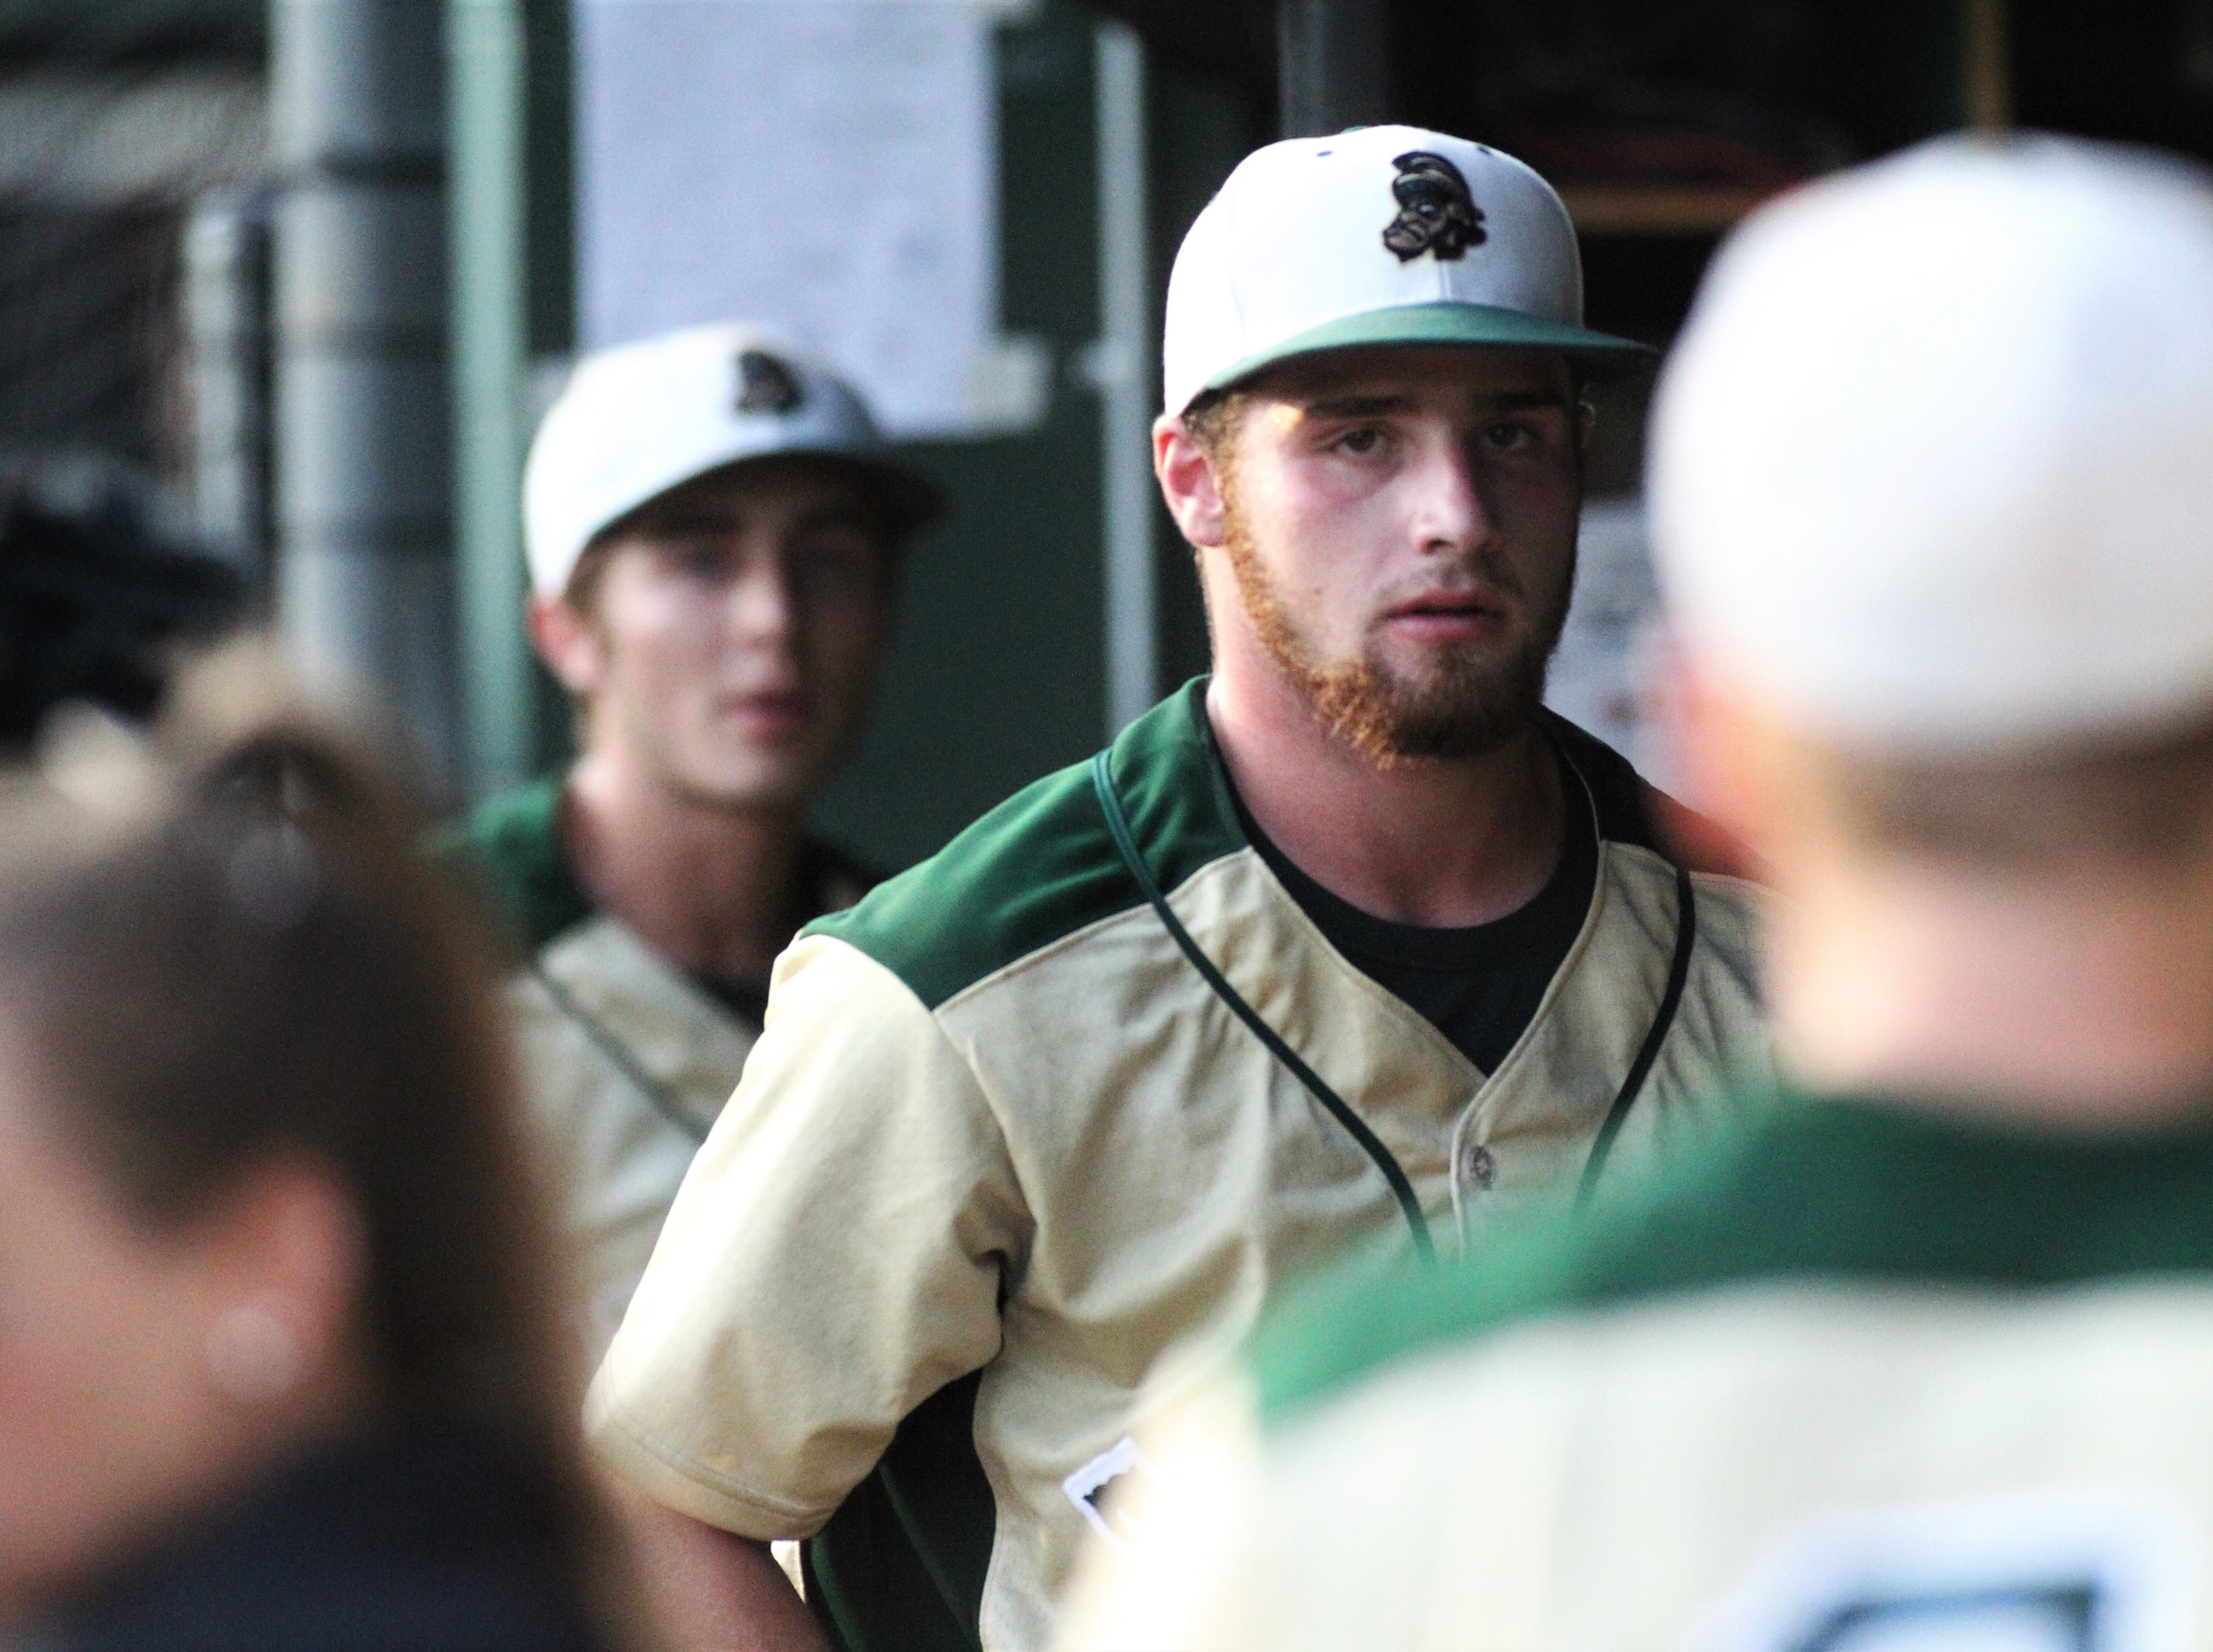 Lincoln senior pitcher Nick Ferrara storms back into the dugout after an inning ends as Lincoln baseball beat Chiles 5-4  in 10 innings during a District 2-8A championship game on Thursday, May 9, 2019.